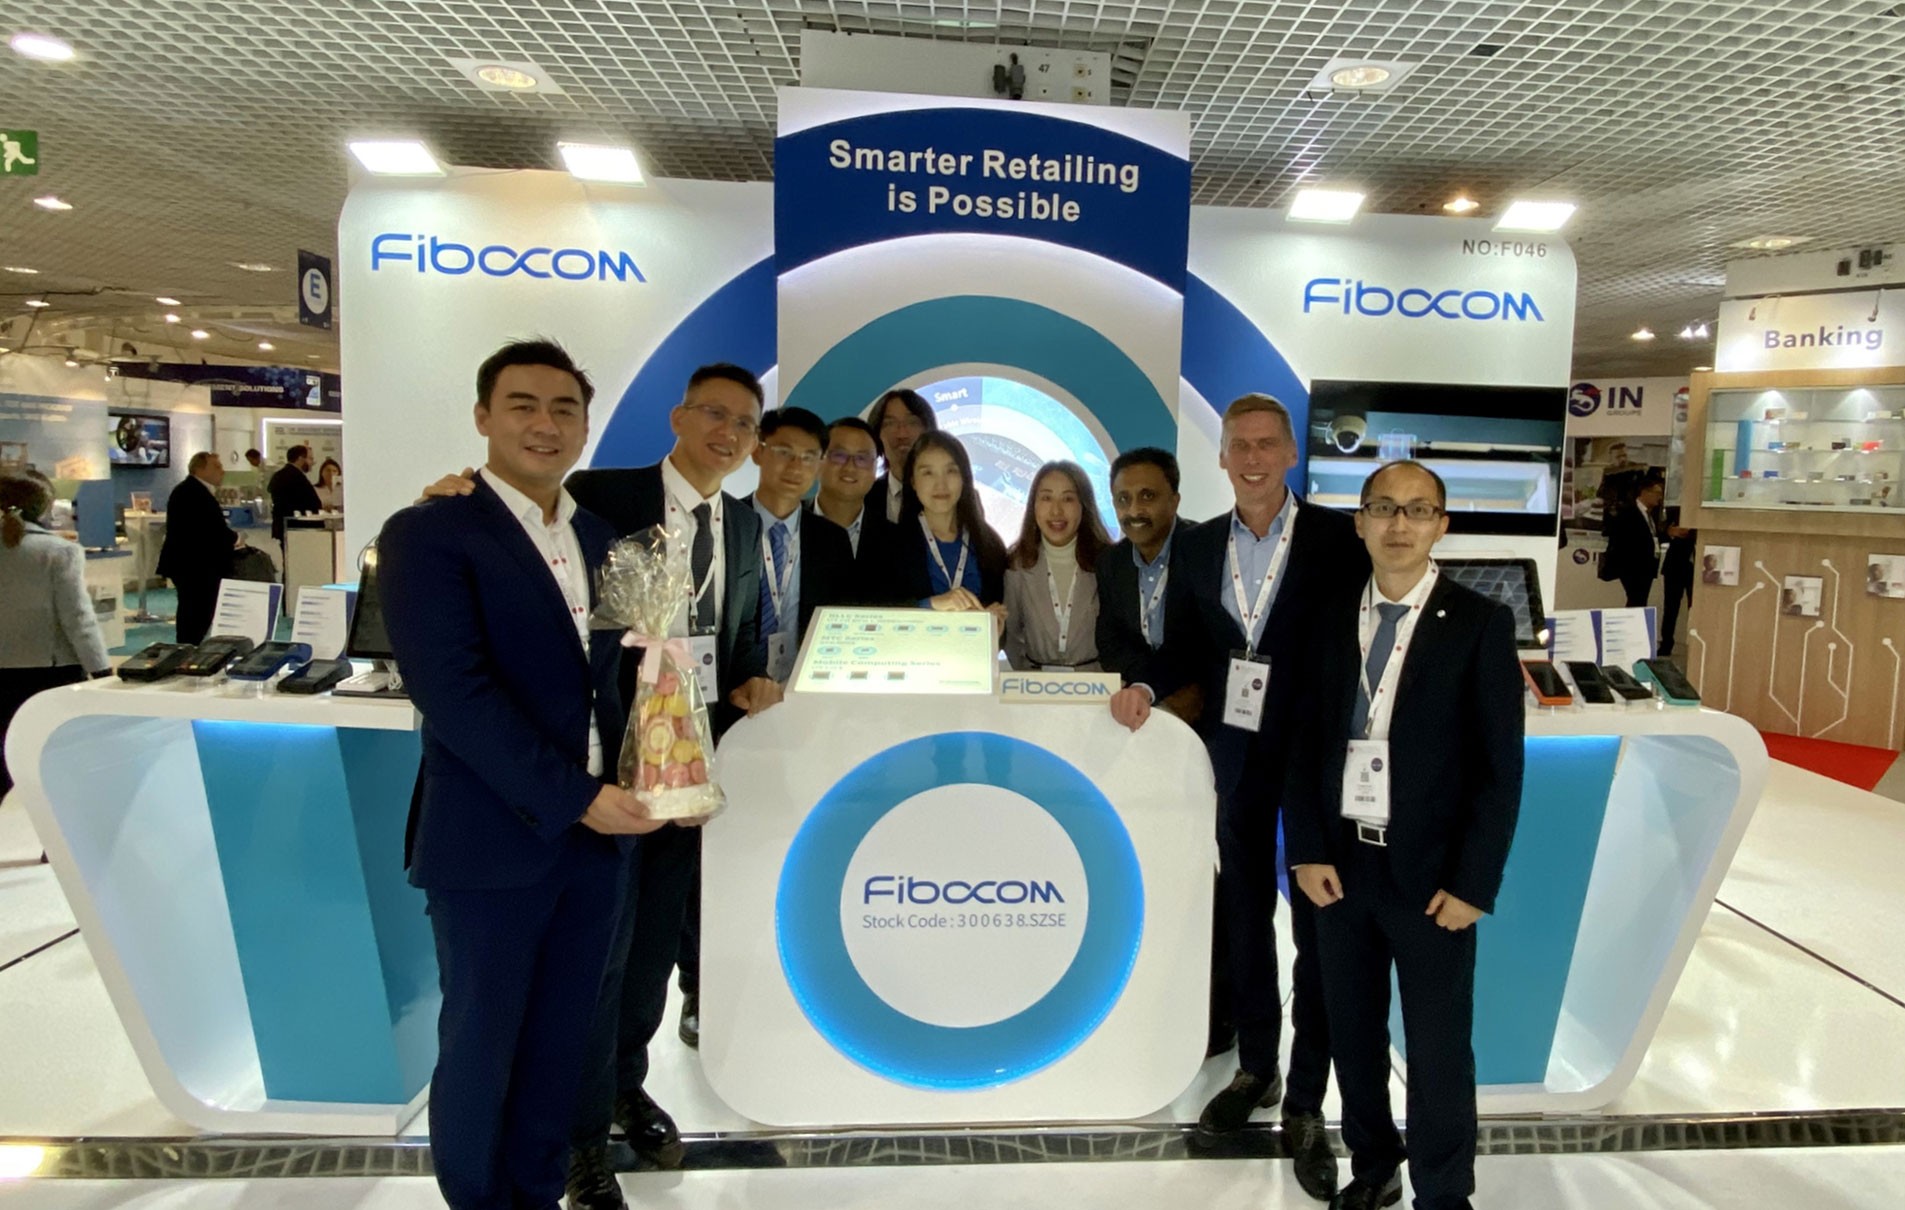 Fibocom is Demonstrating its Smart Point-of-Sale Solution at the Trustech